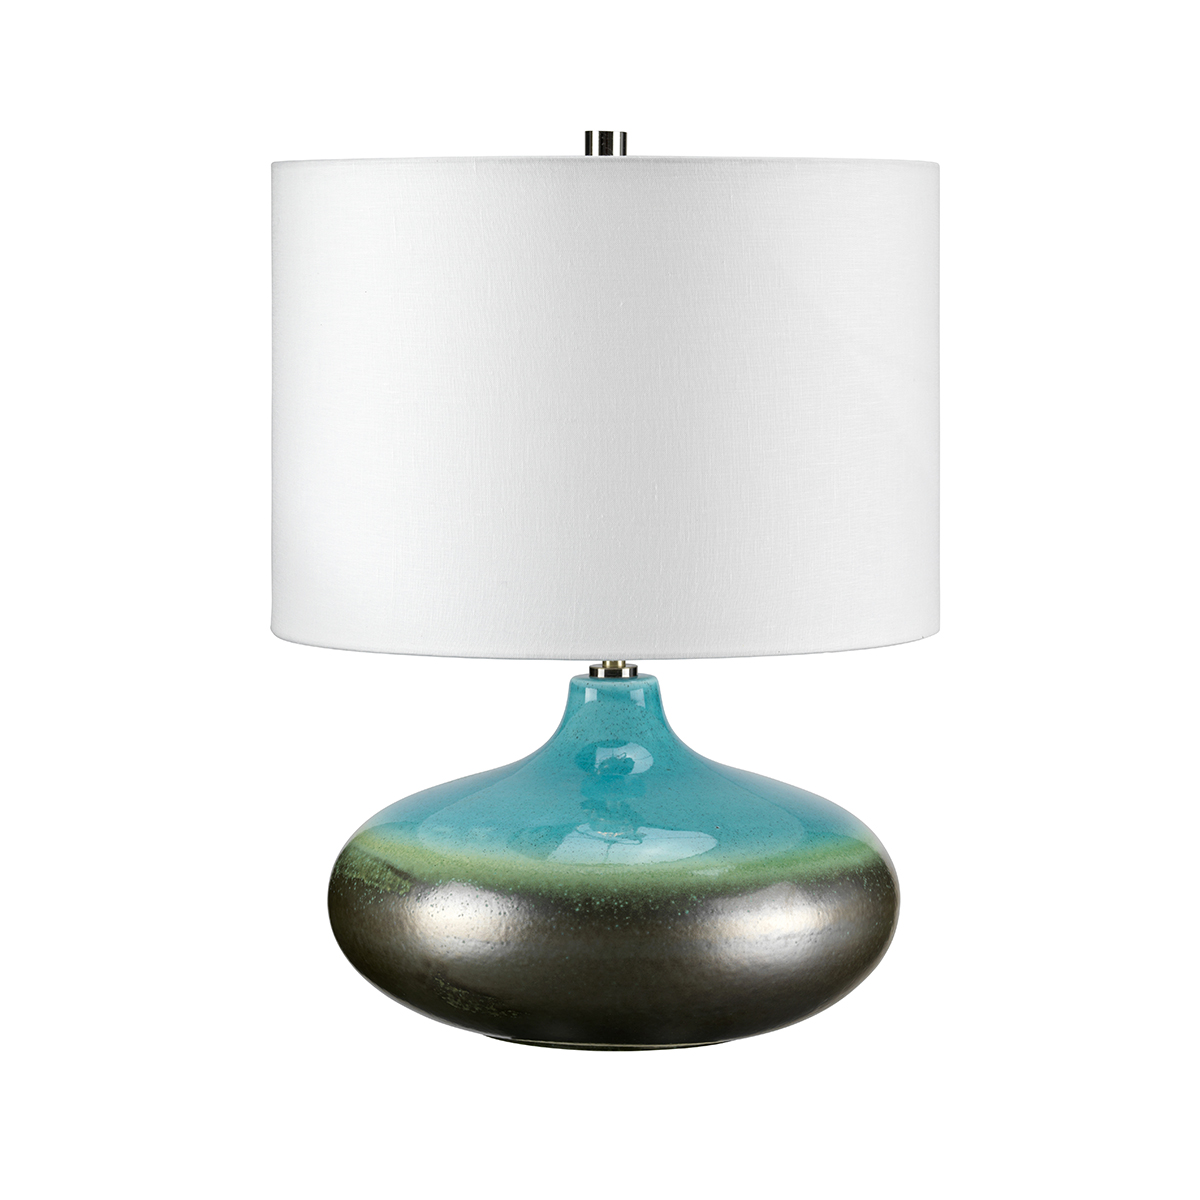 Image of: 31299 Table Lamp In Ceramic With Turquoise And Graphite Reactive Glaze Distinctive Lighting Uk